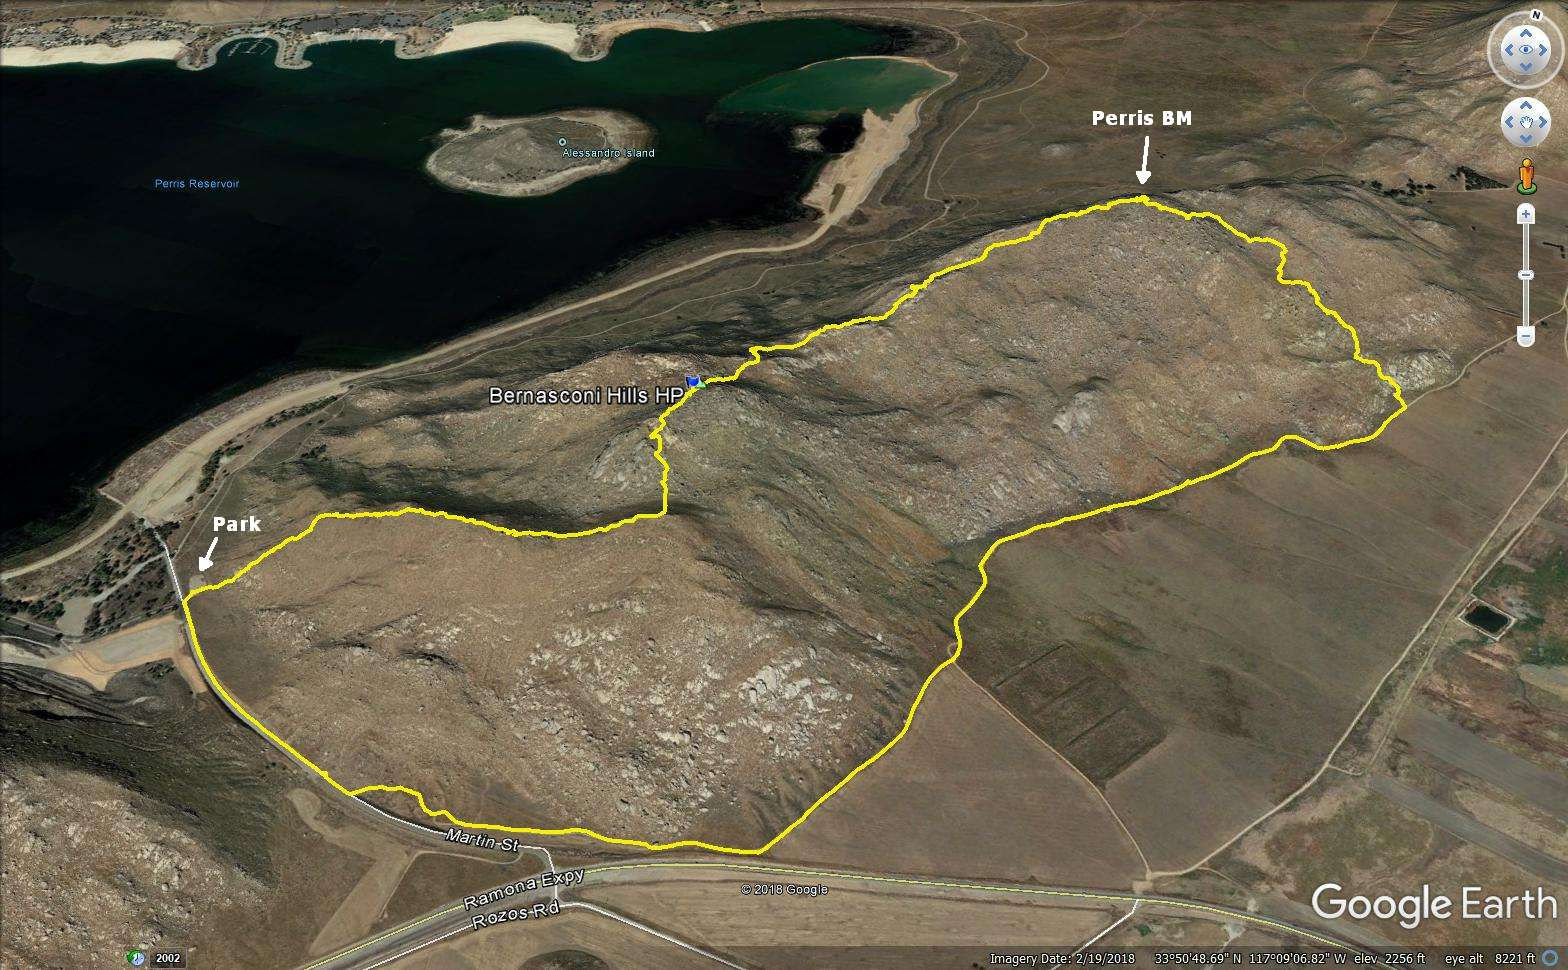 Iron Hiker Bernasconi Hills High Point And Perris Benchmark